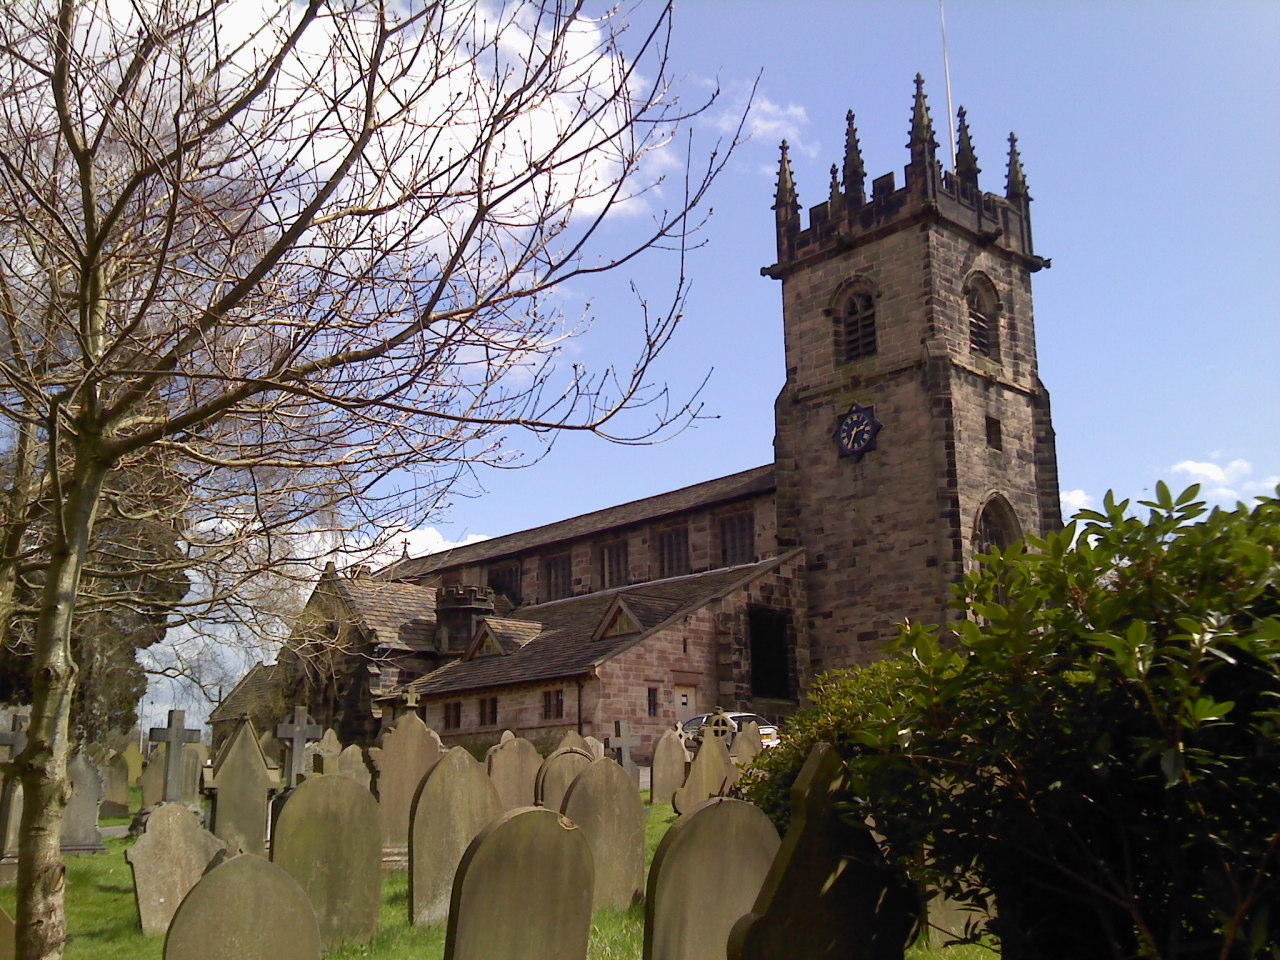 St Bartholomew's Church, Wilmslow, Cheshire